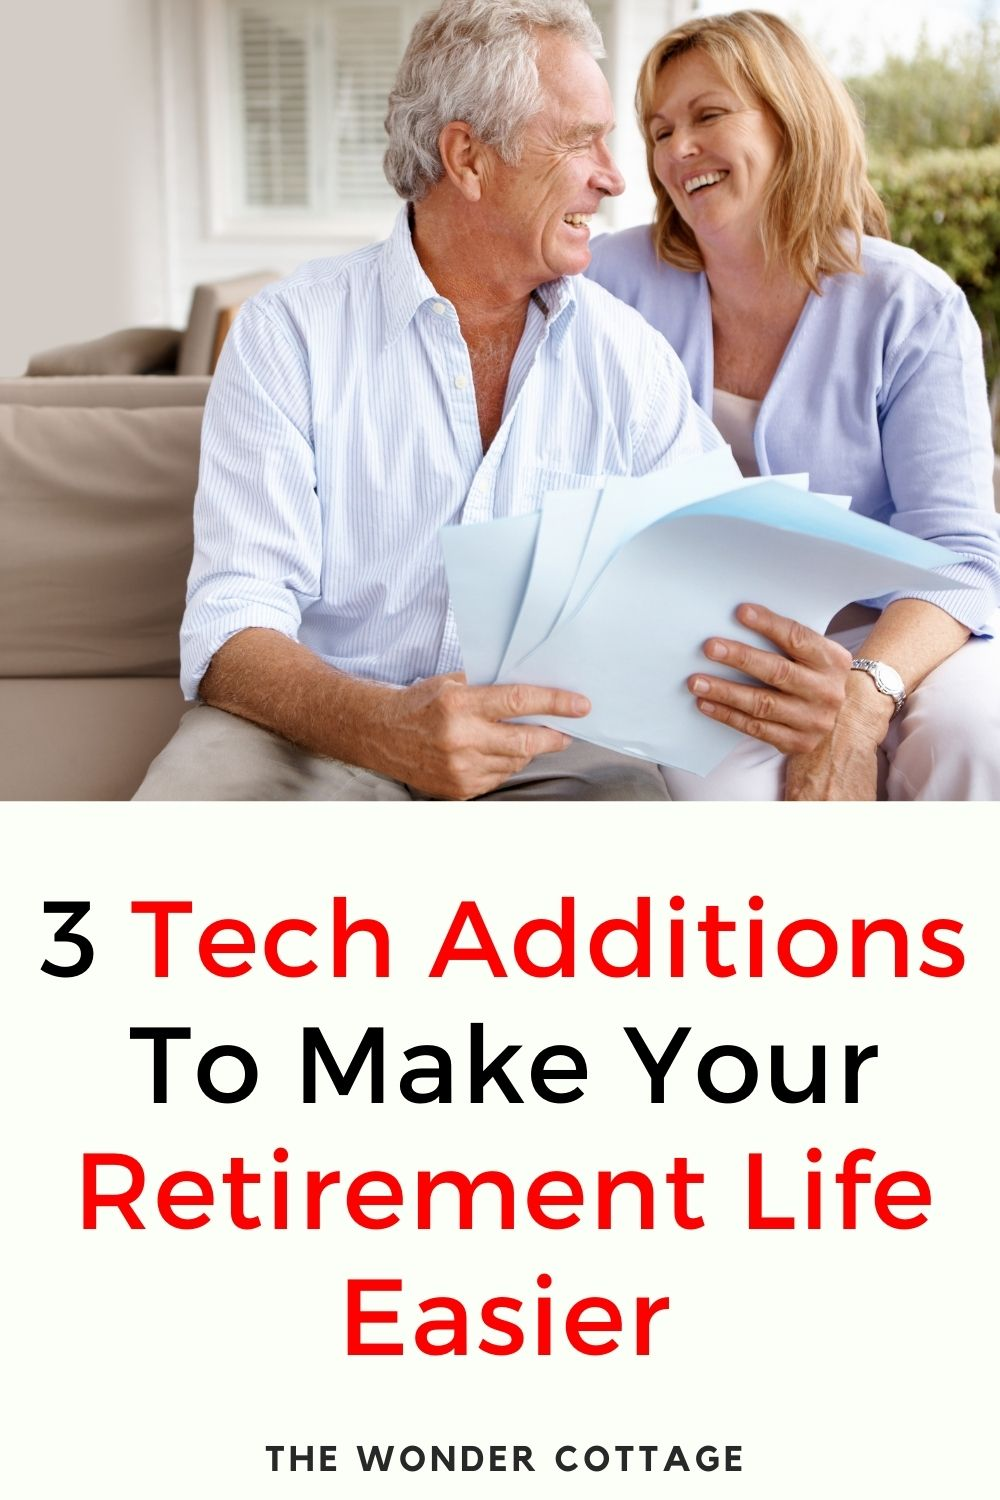 3 tech additions to make retirement life easier